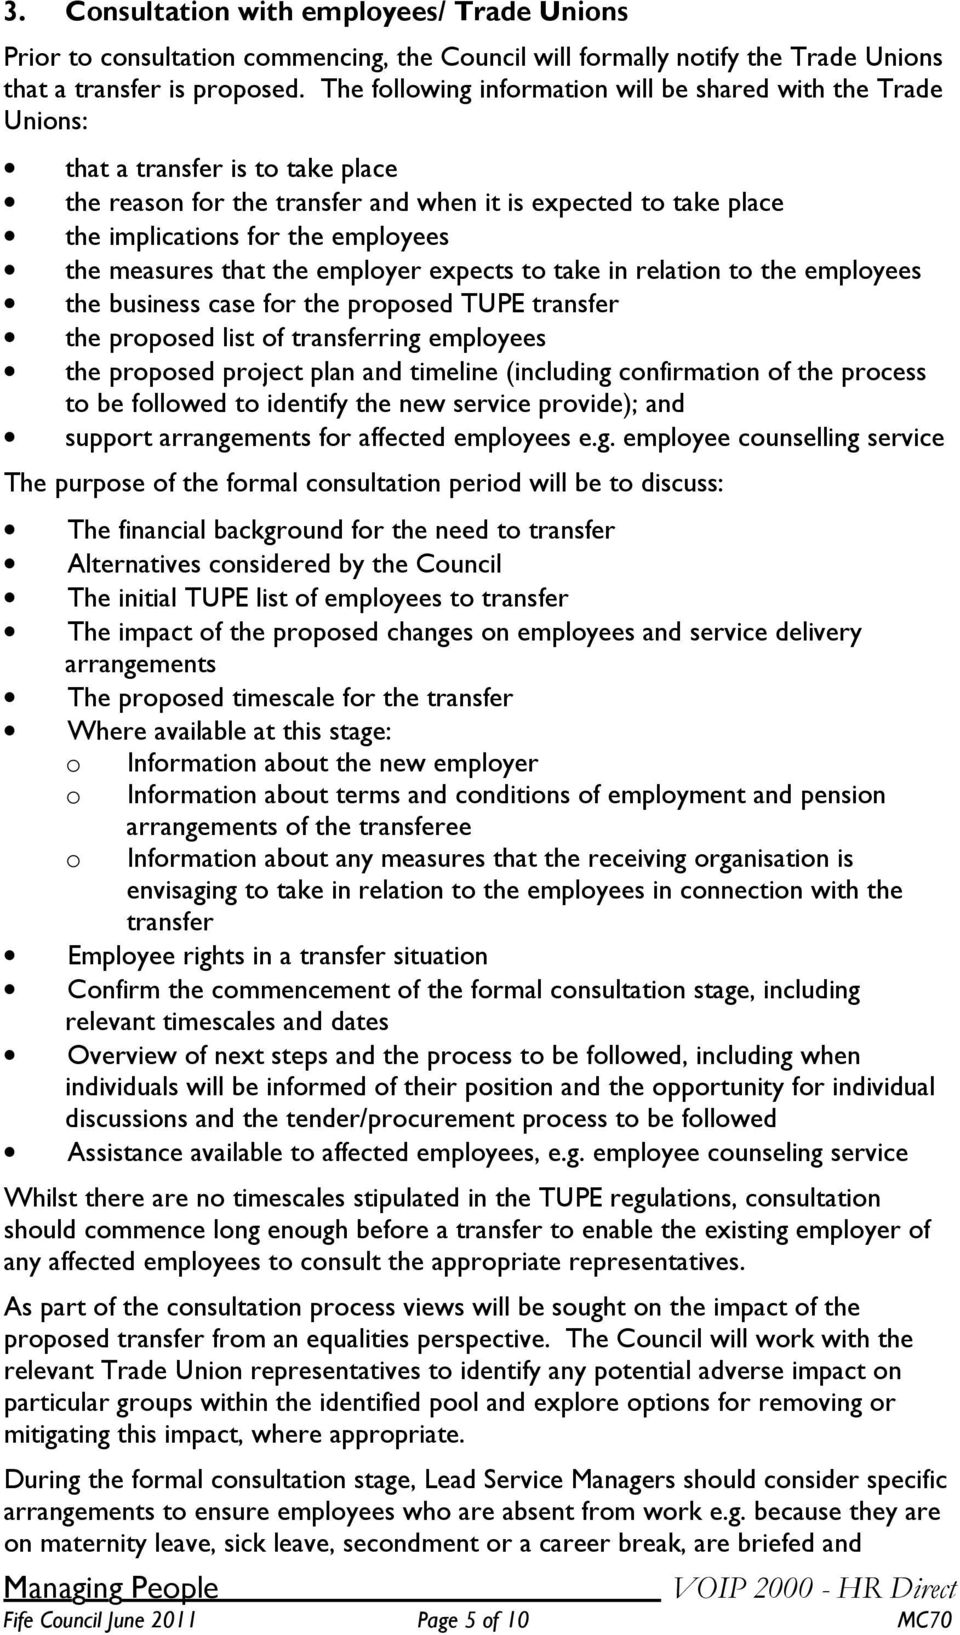 the measures that the employer expects to take in relation to the employees the business case for the proposed TUPE transfer the proposed list of transferring employees the proposed project plan and